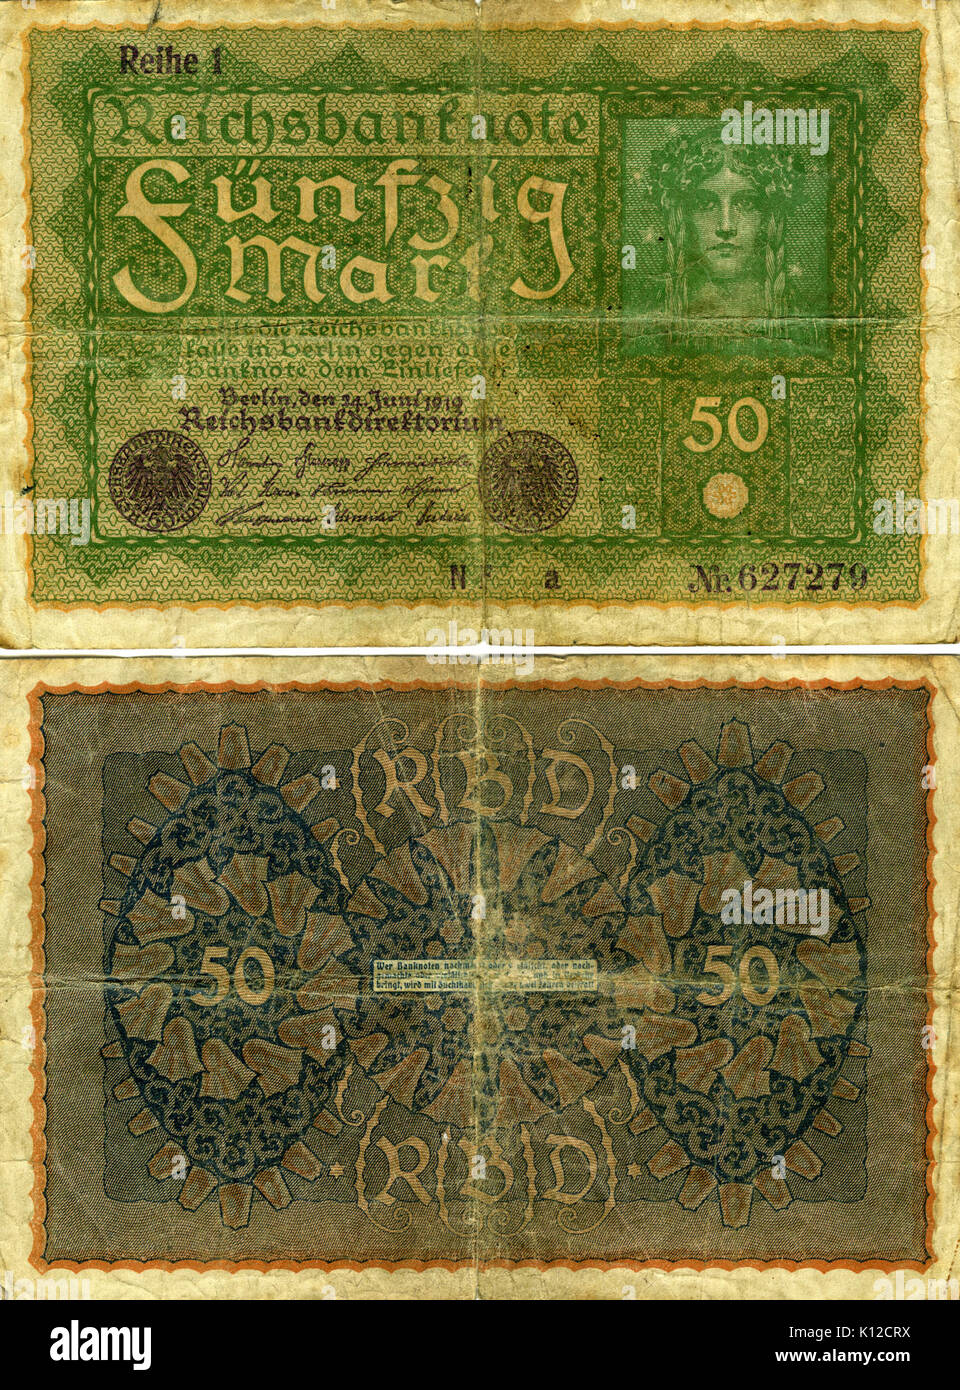 Banknote from the German Reich (Weimar Republic) 50 Mark 1919 - Stock Image